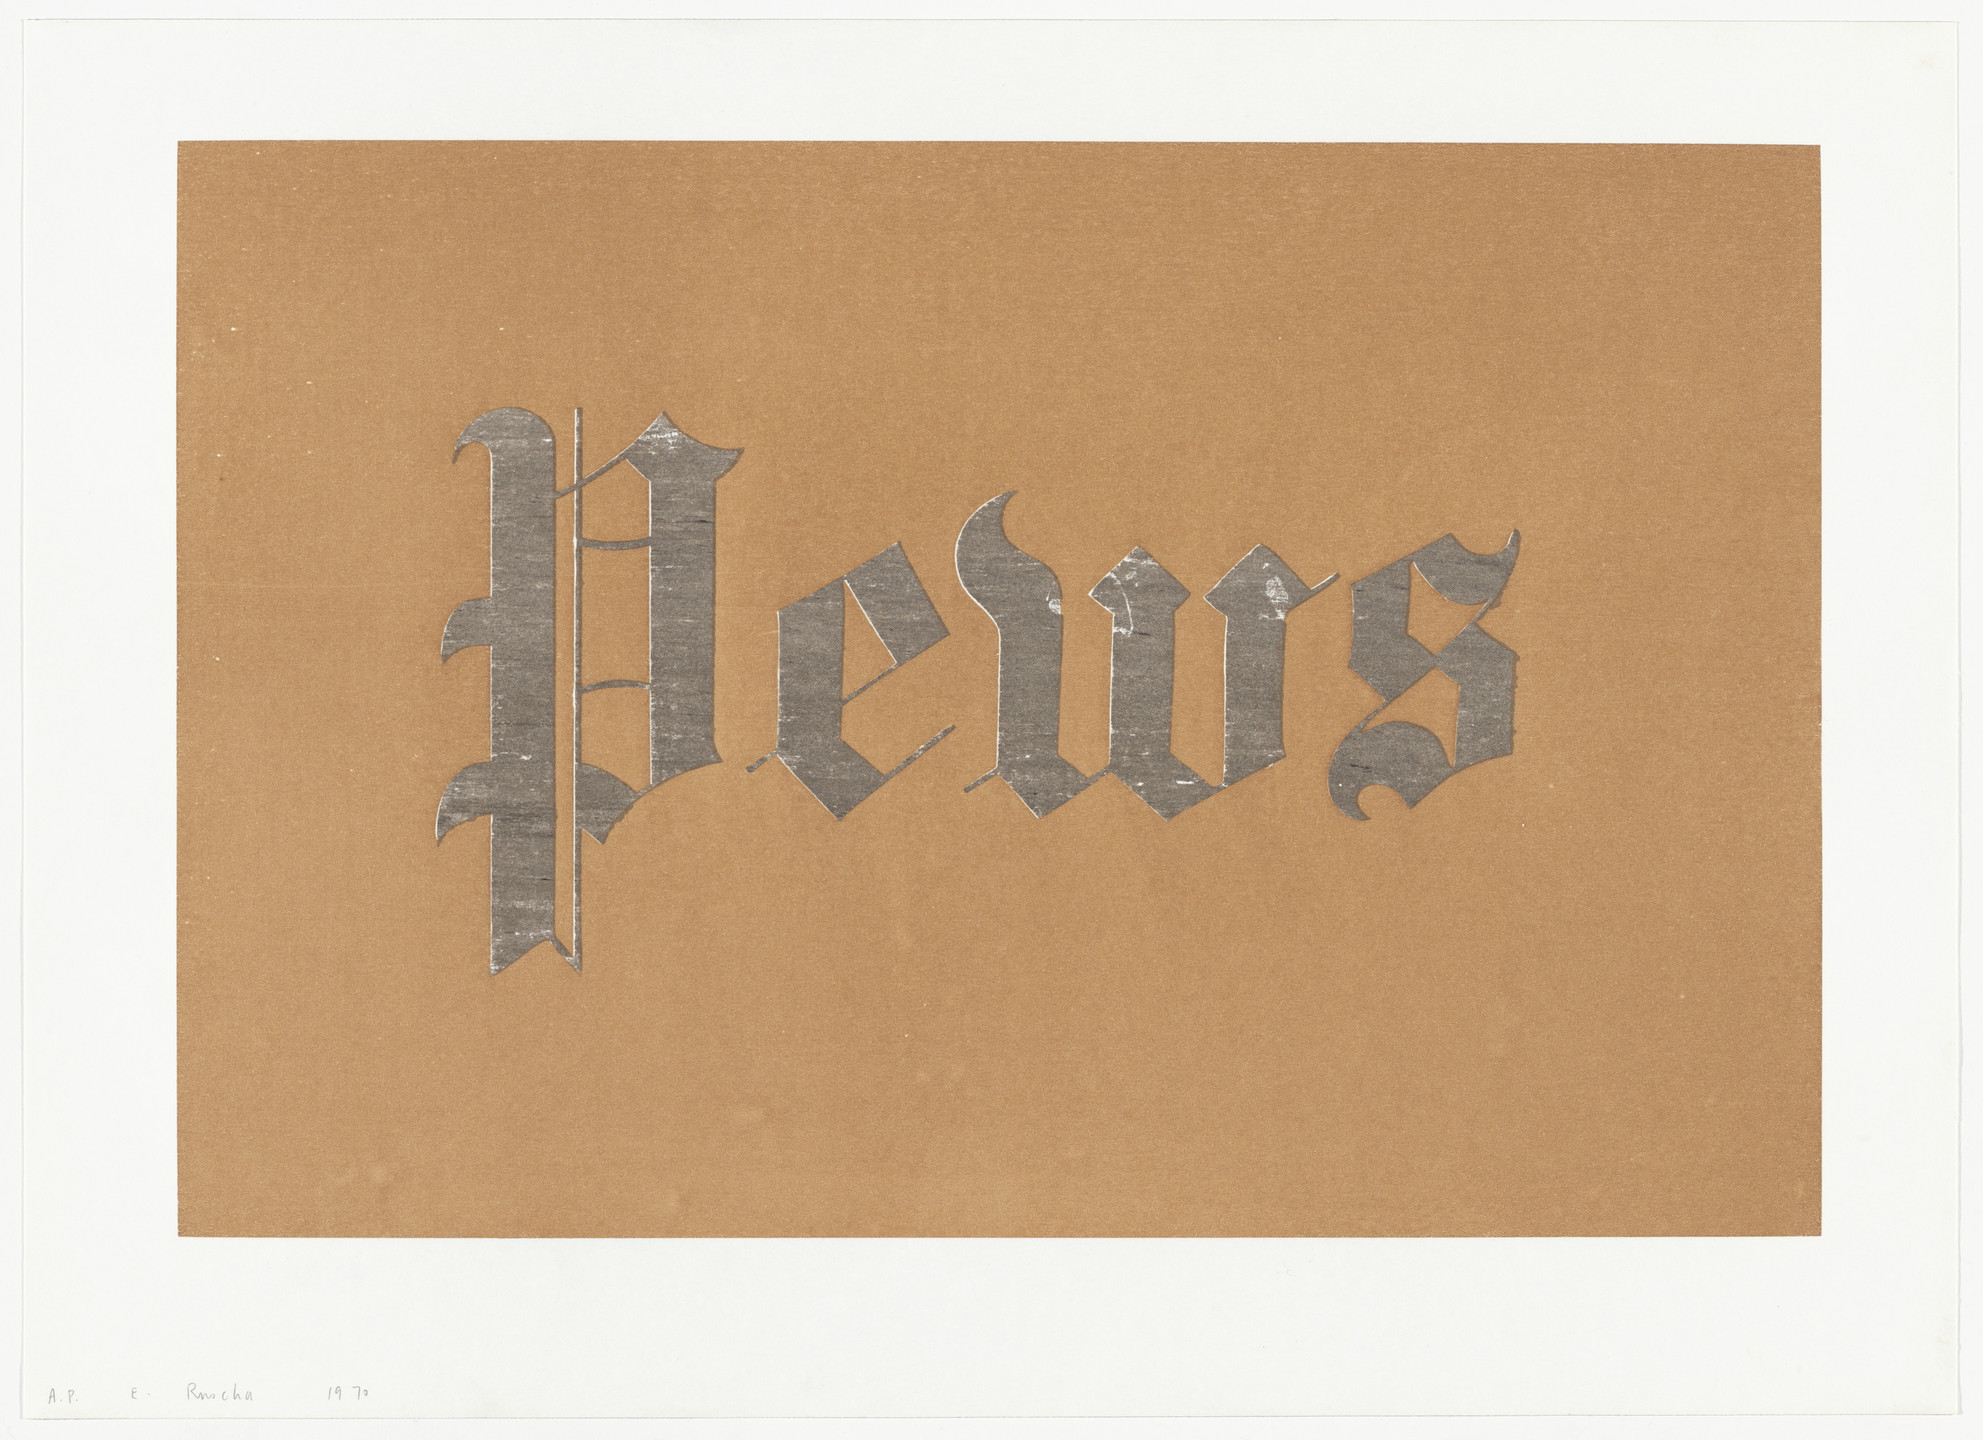 Edward Ruscha. _Pews_from News, Mews, Pews, Brews, Stews & Dues. 1970